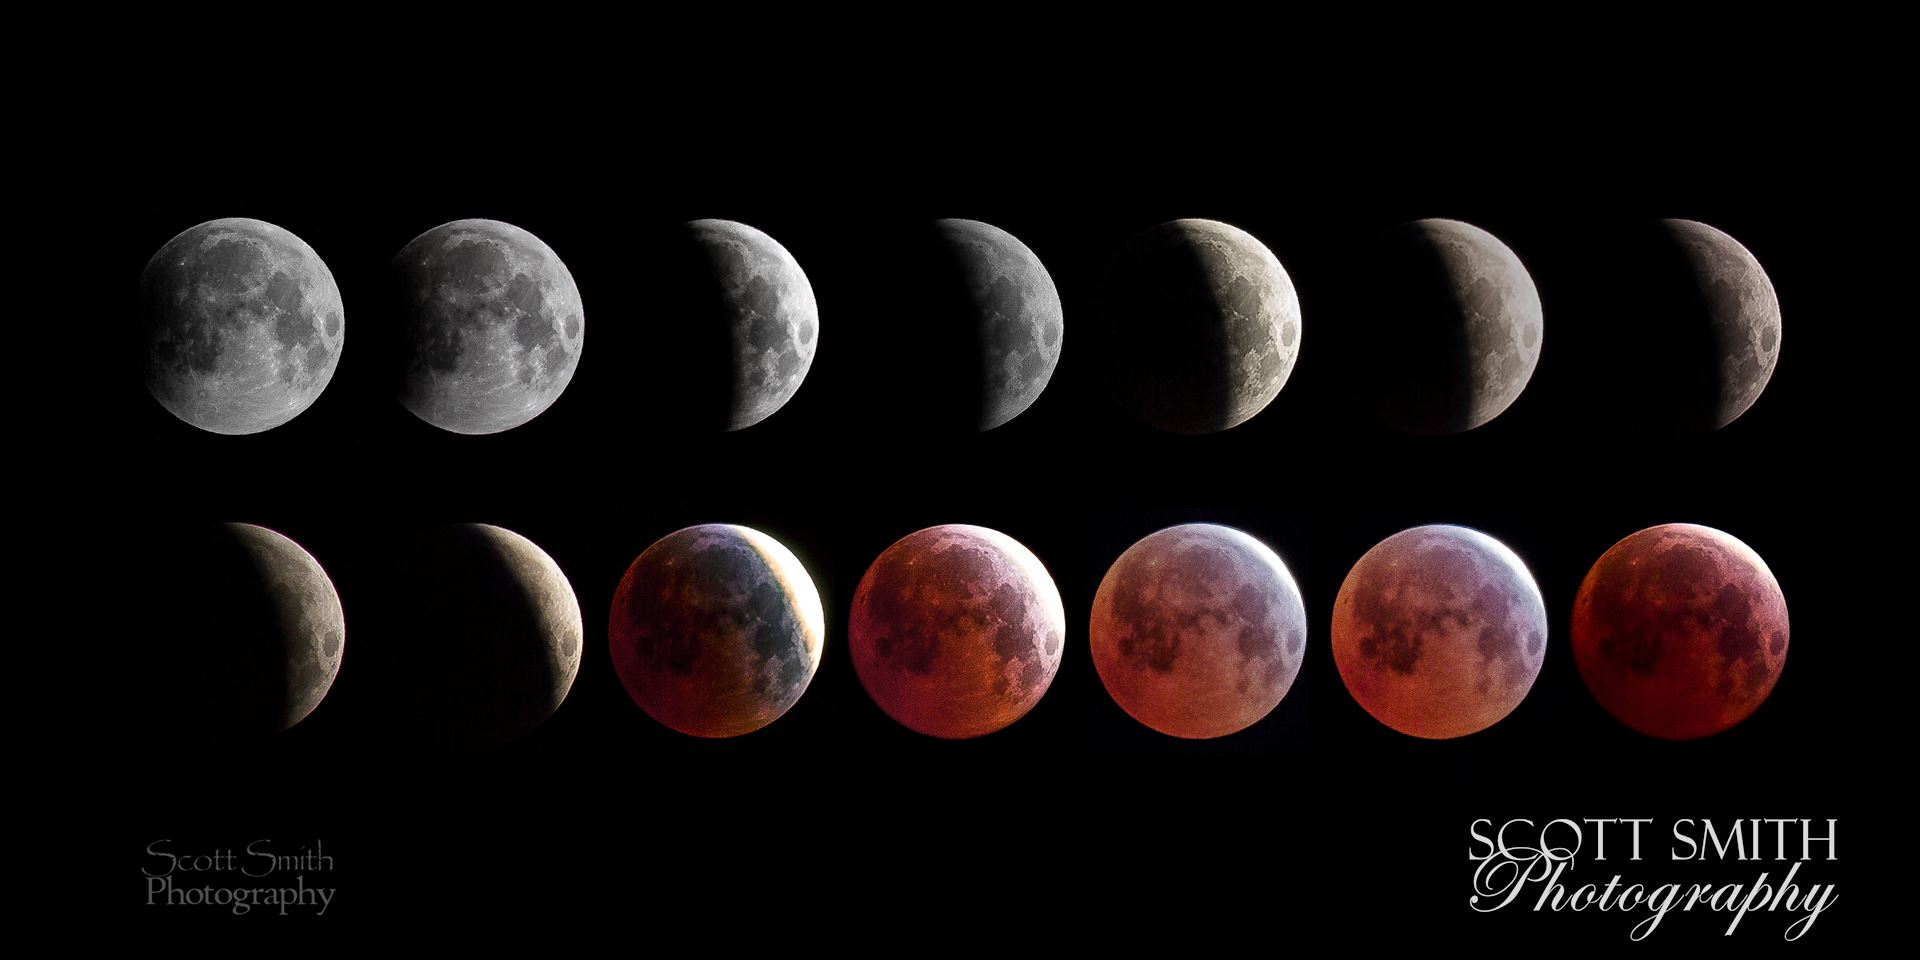 April 4 2015 Eclipse Collage - A collage of 14 images from the spring 2015 lunar eclipse, showing the different phases of the moon. by Scott Smith Photos